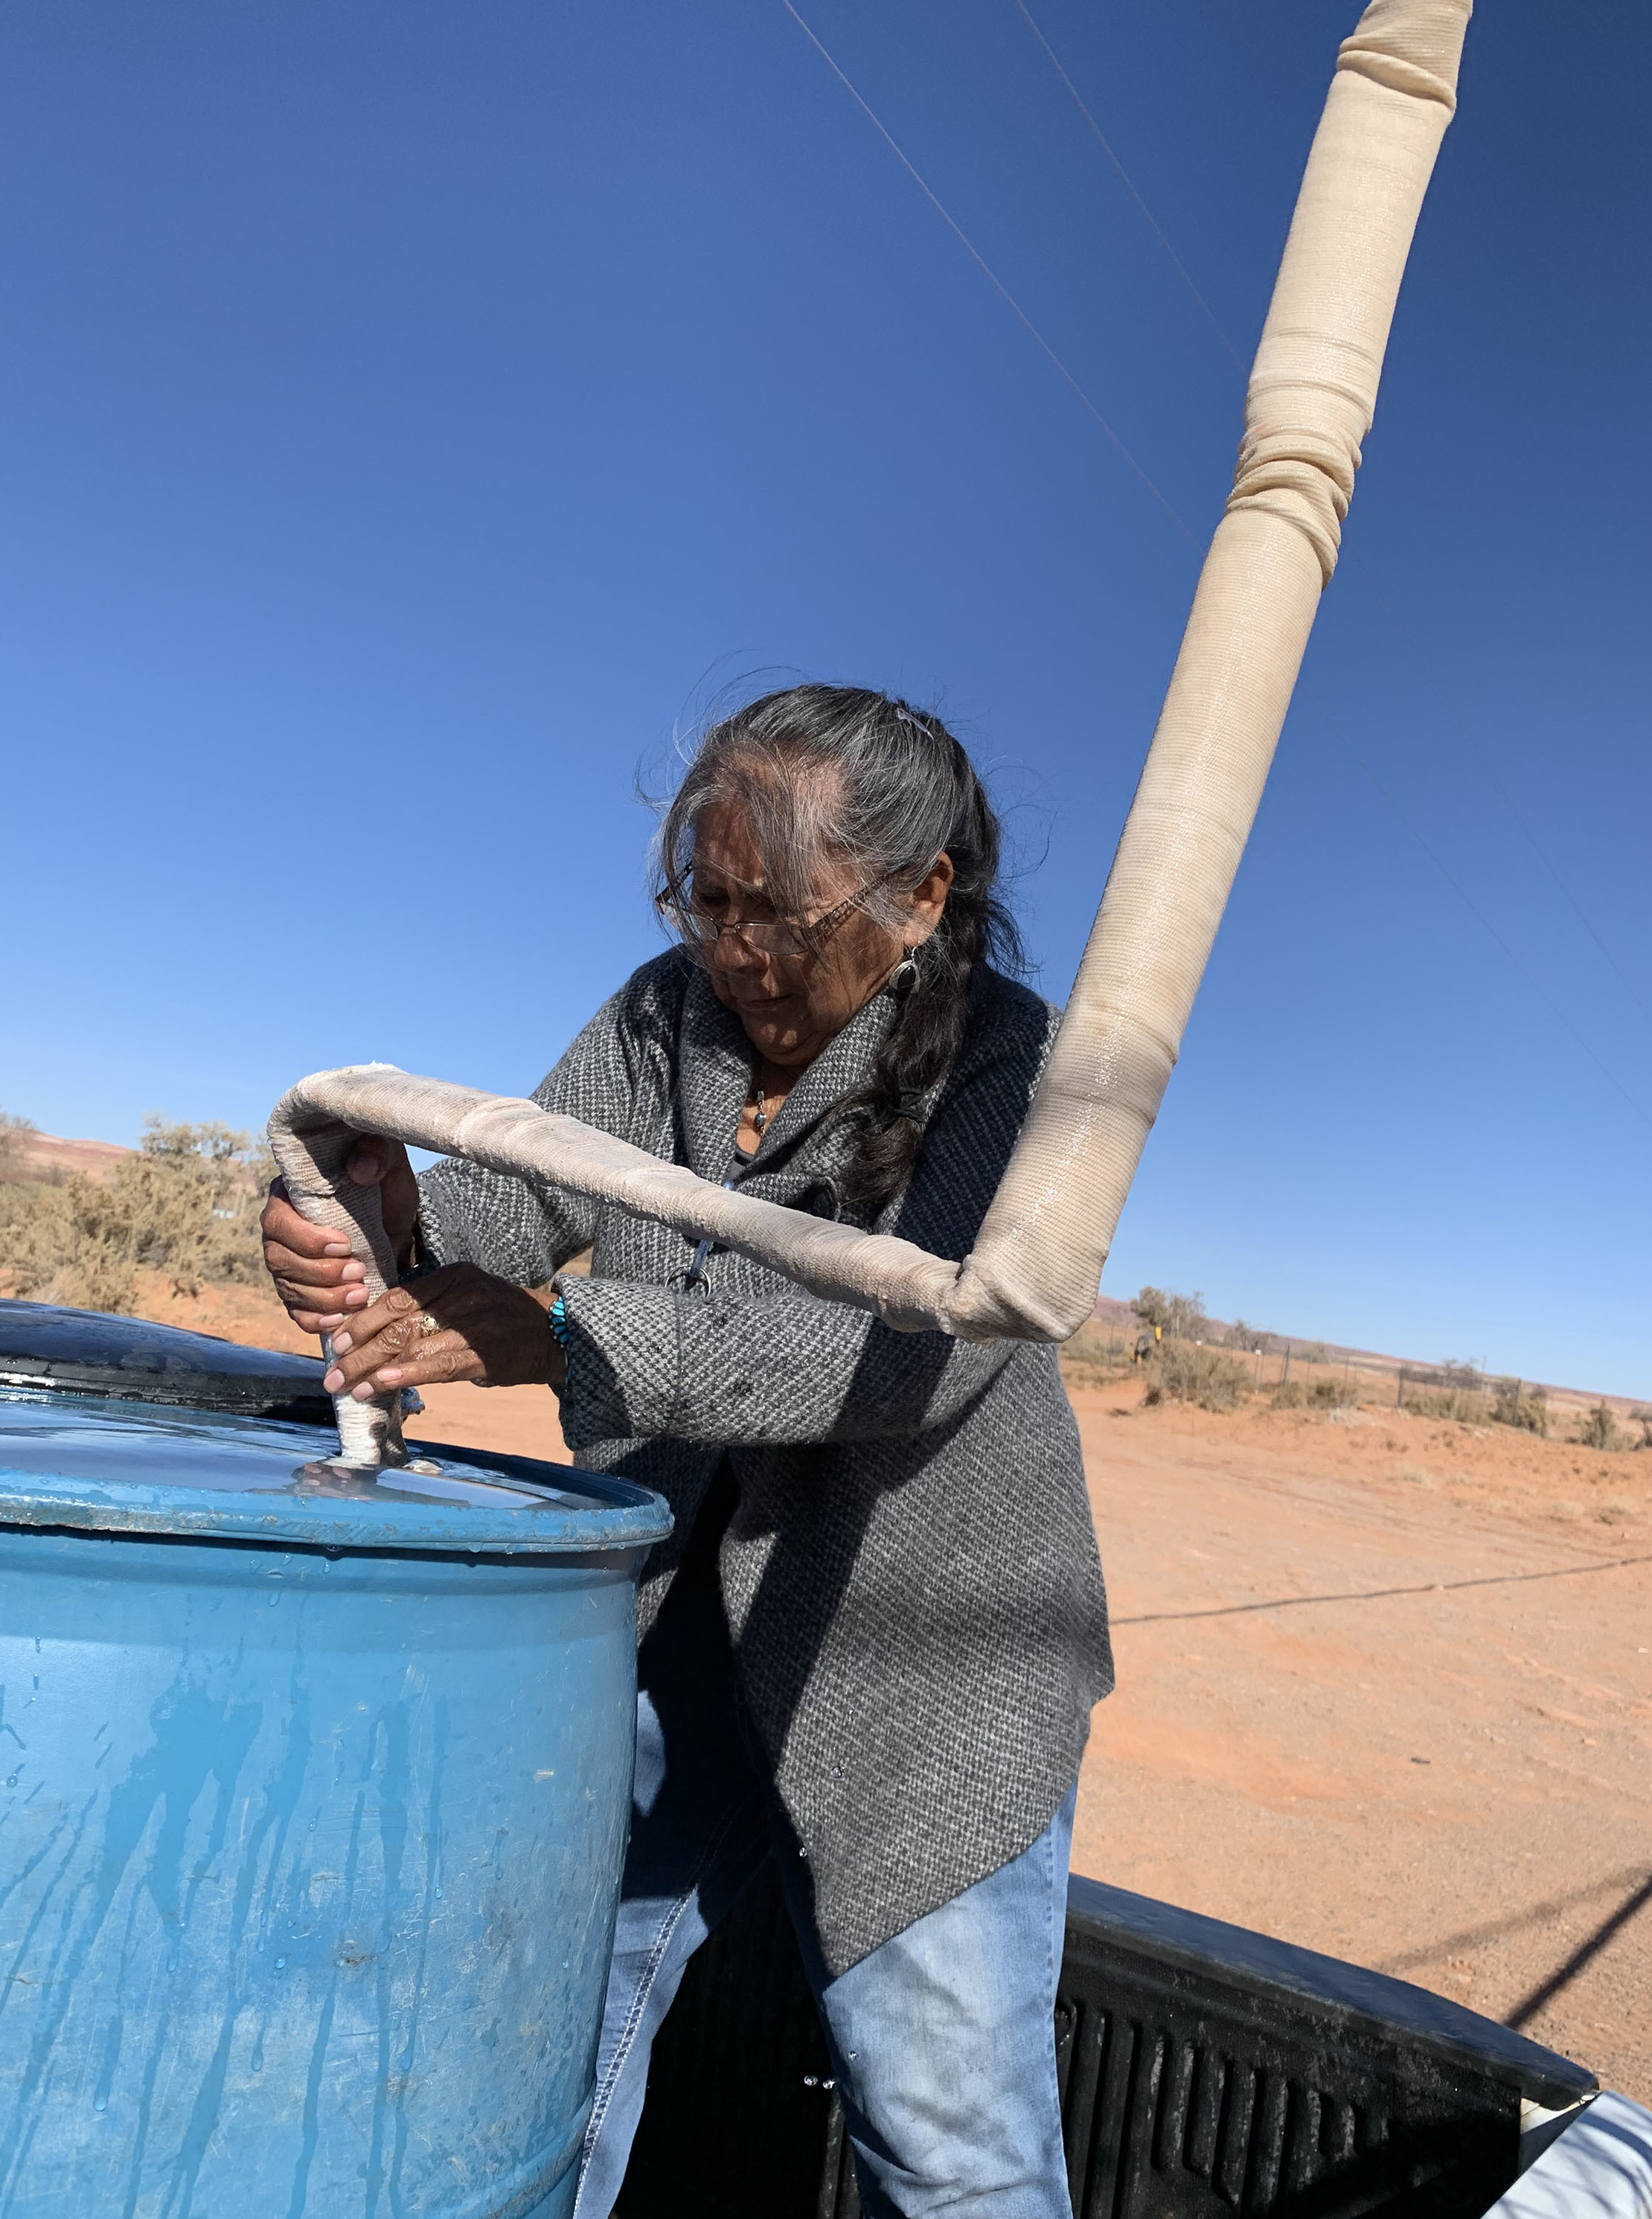 Many Native Americans Can't Get Clean Water, Report Finds